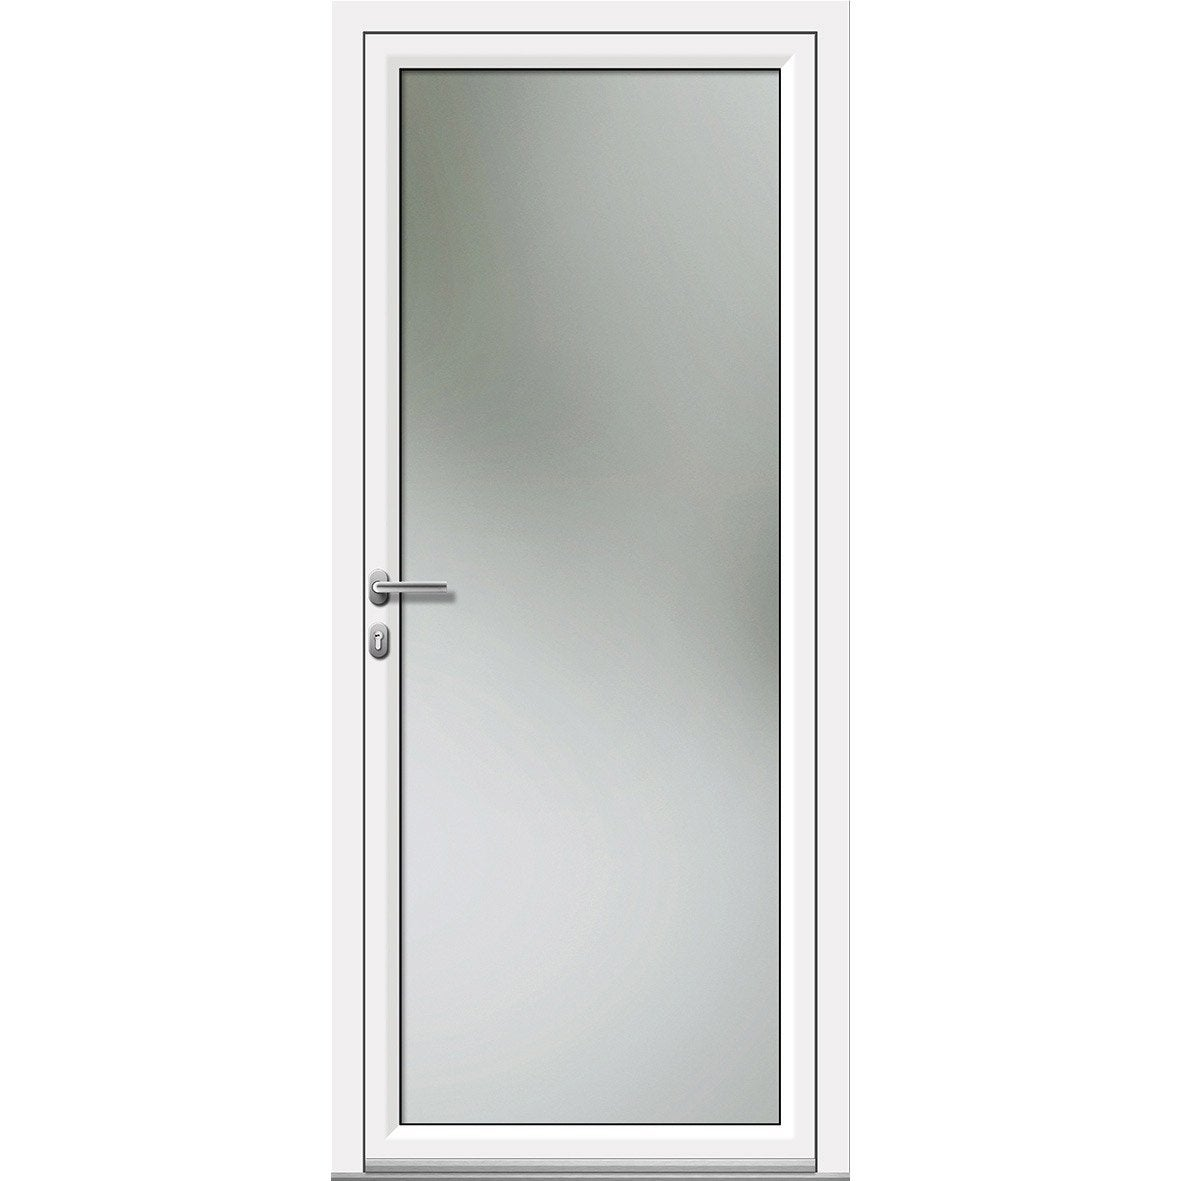 Porte sur mesure leroy merlin maison design for Porte sur mesure